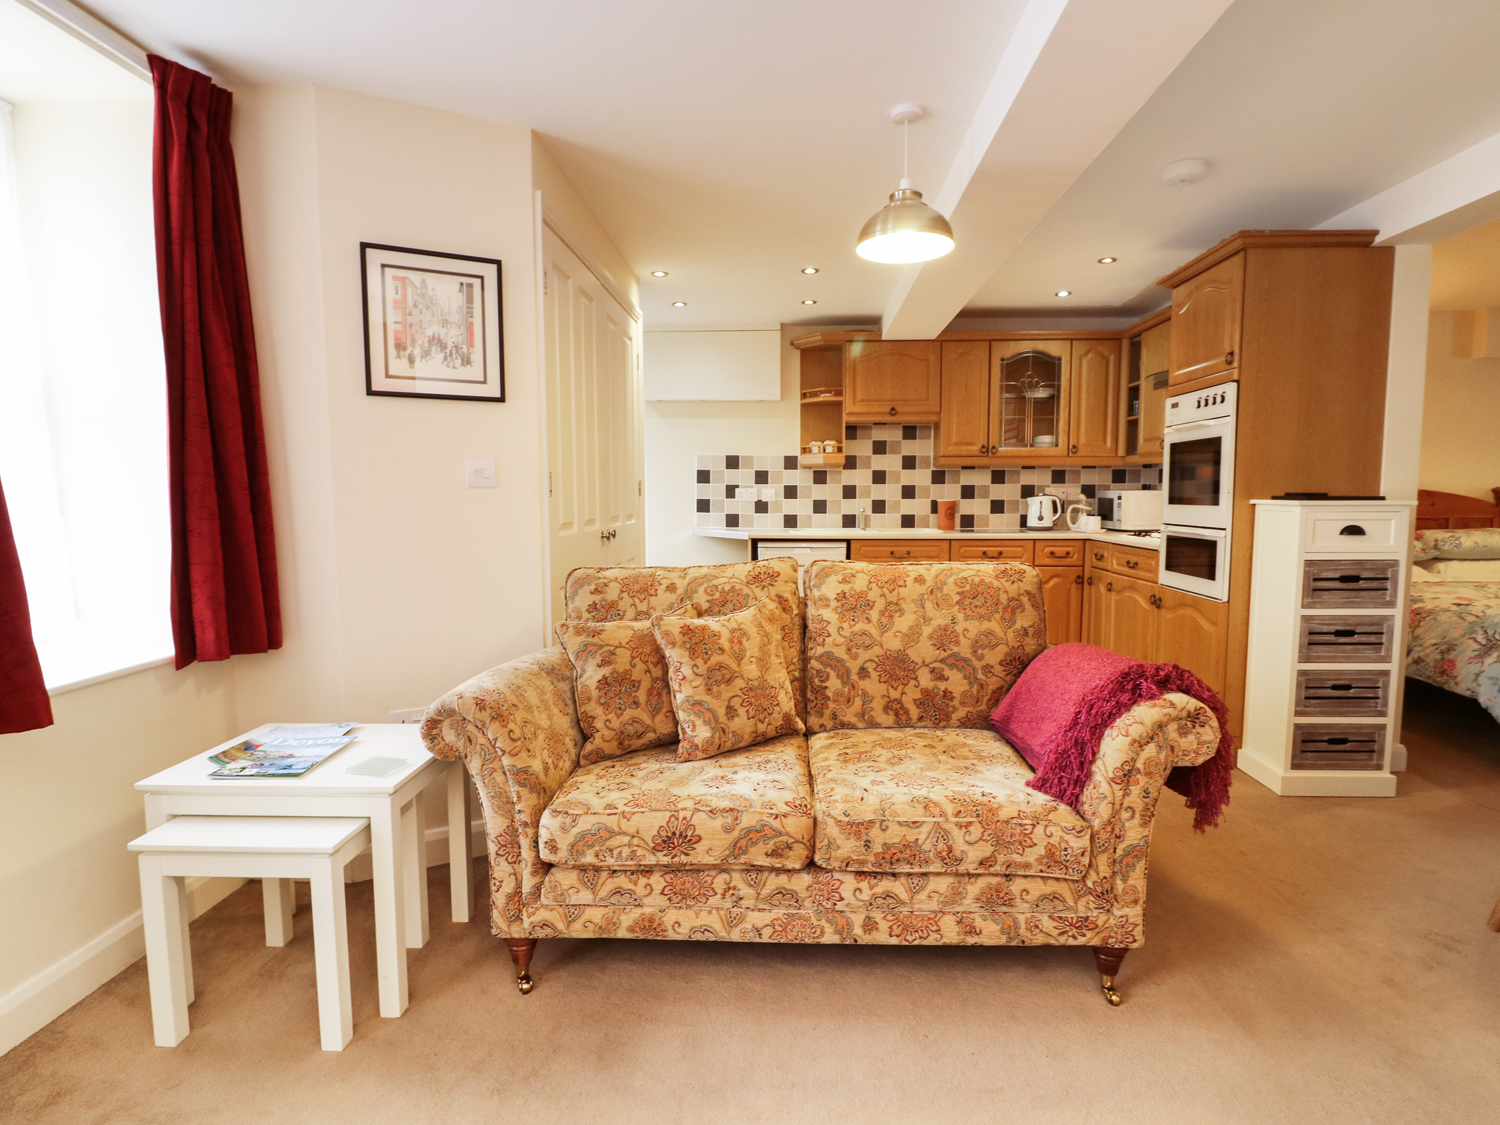 1 bedroom Cottage for rent in Chagford